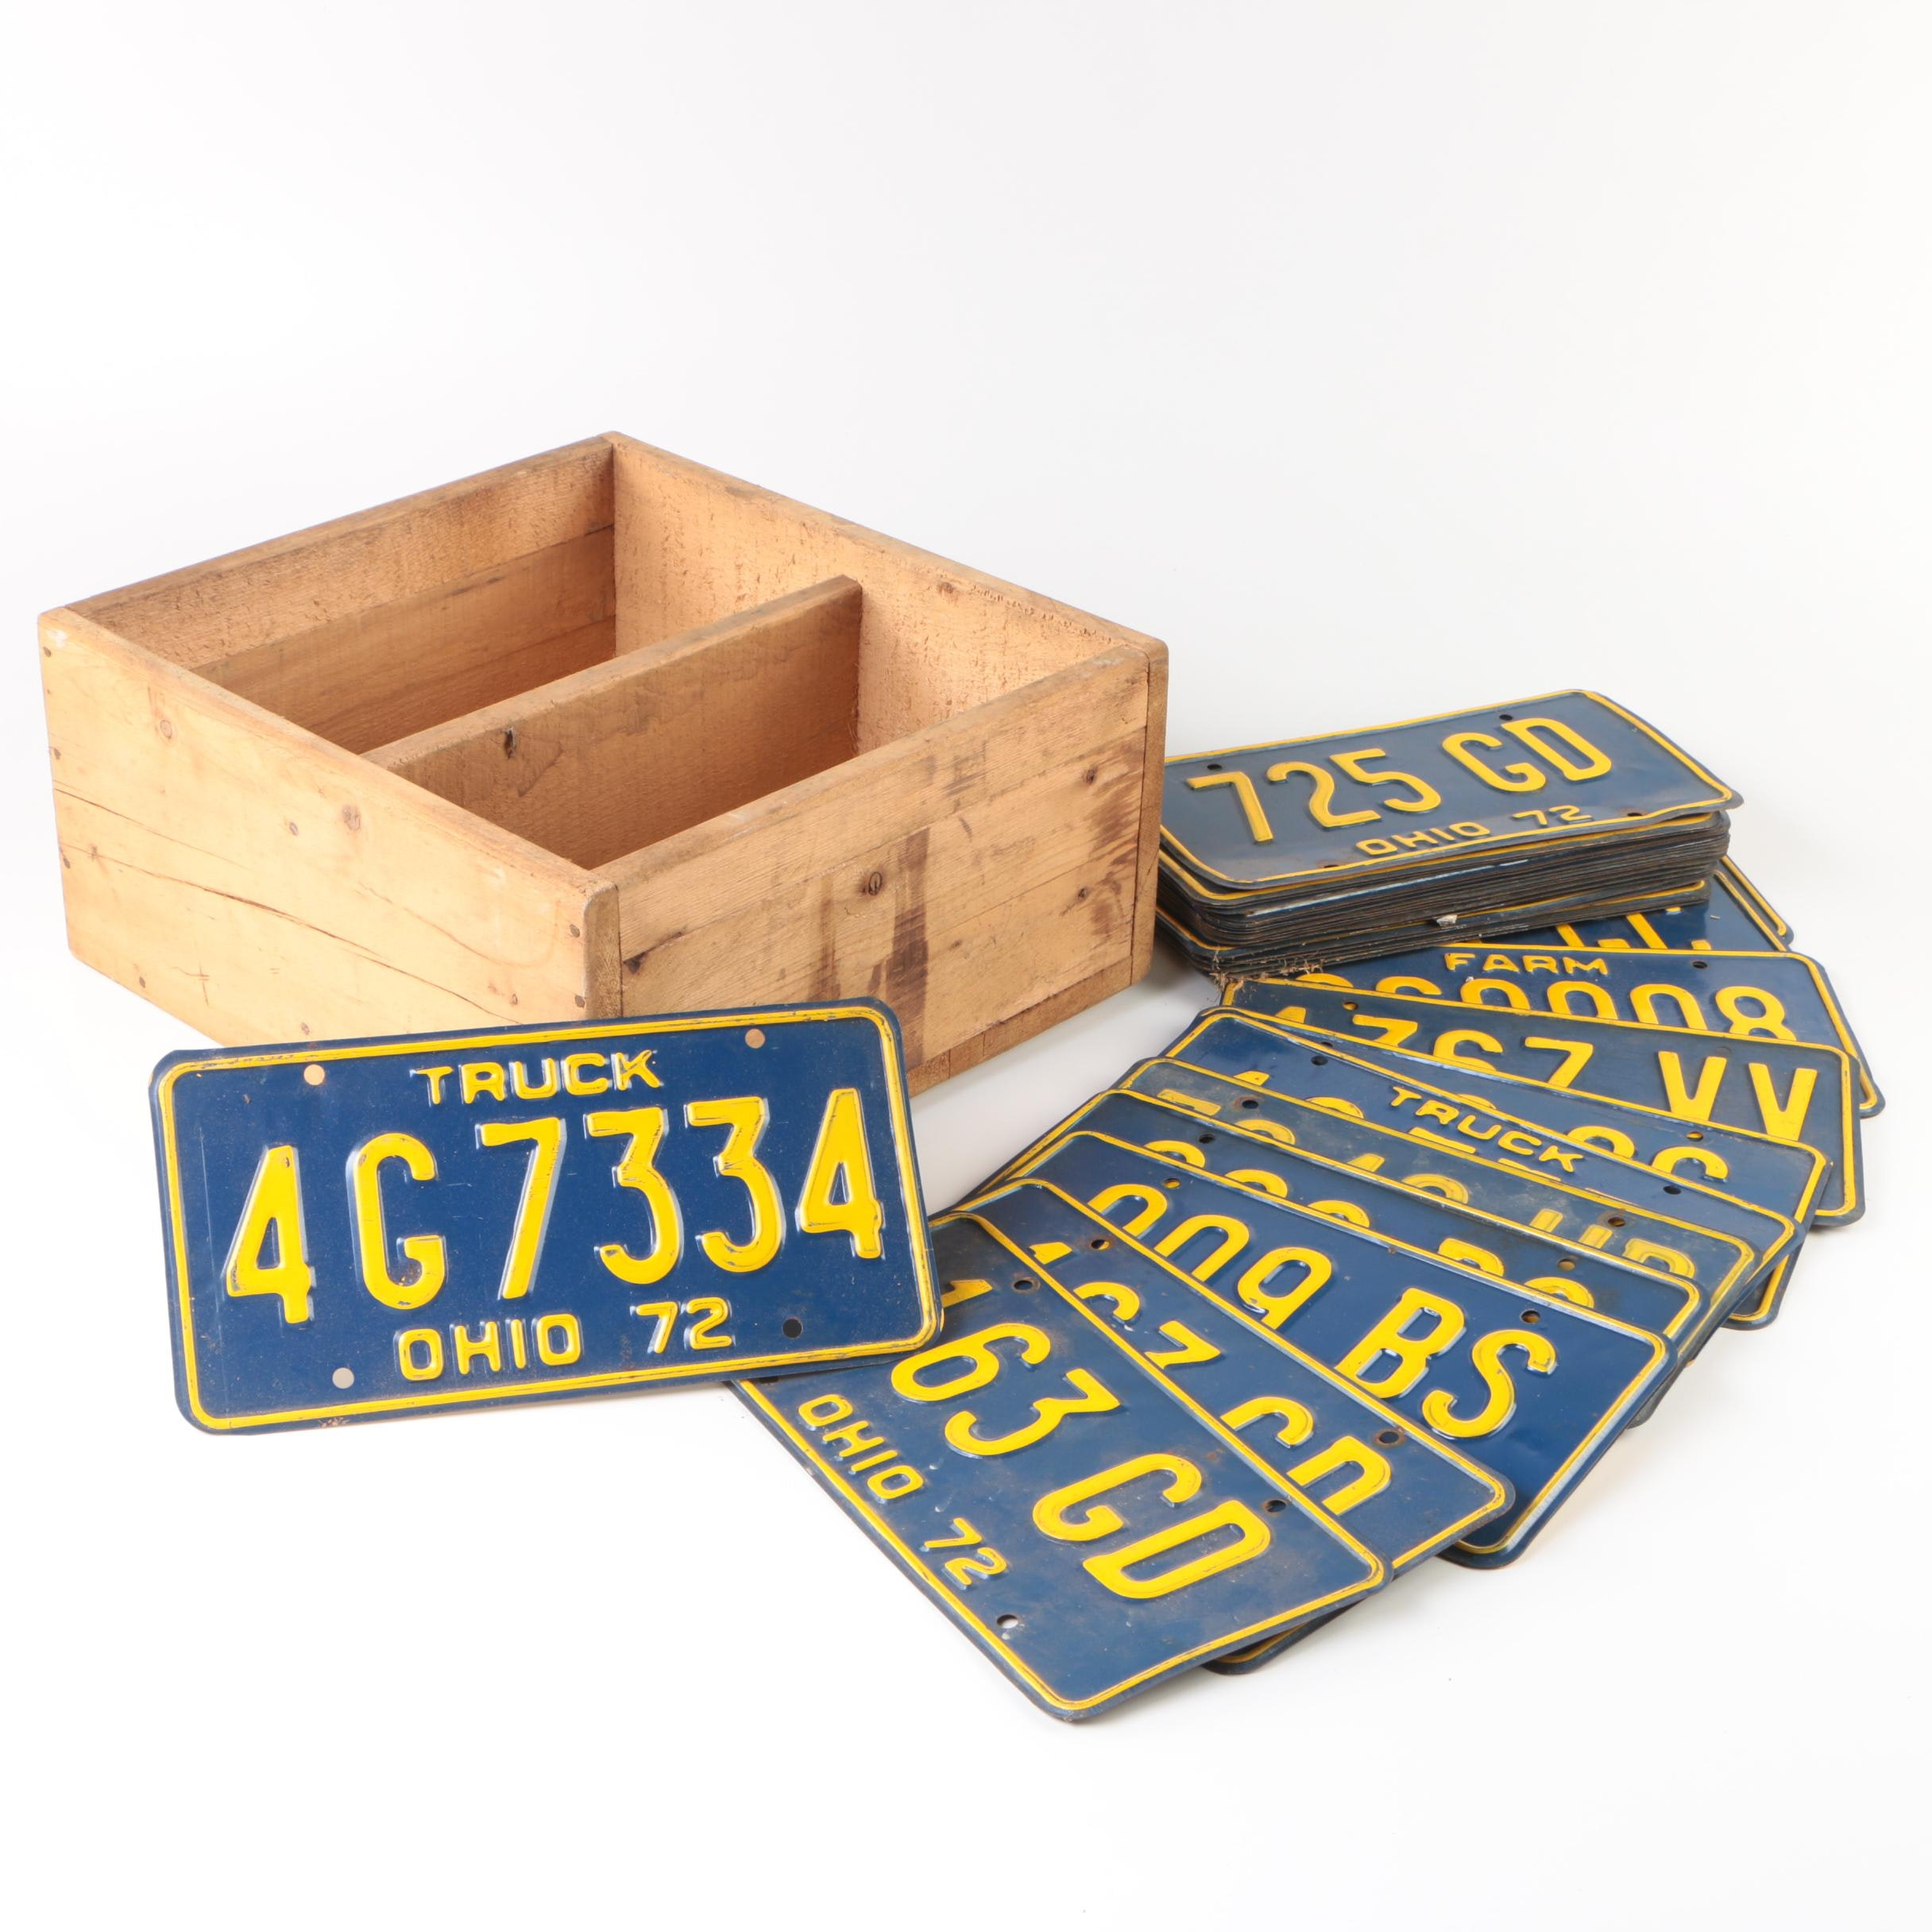 1972 Ohio Automotive License Plates and Box